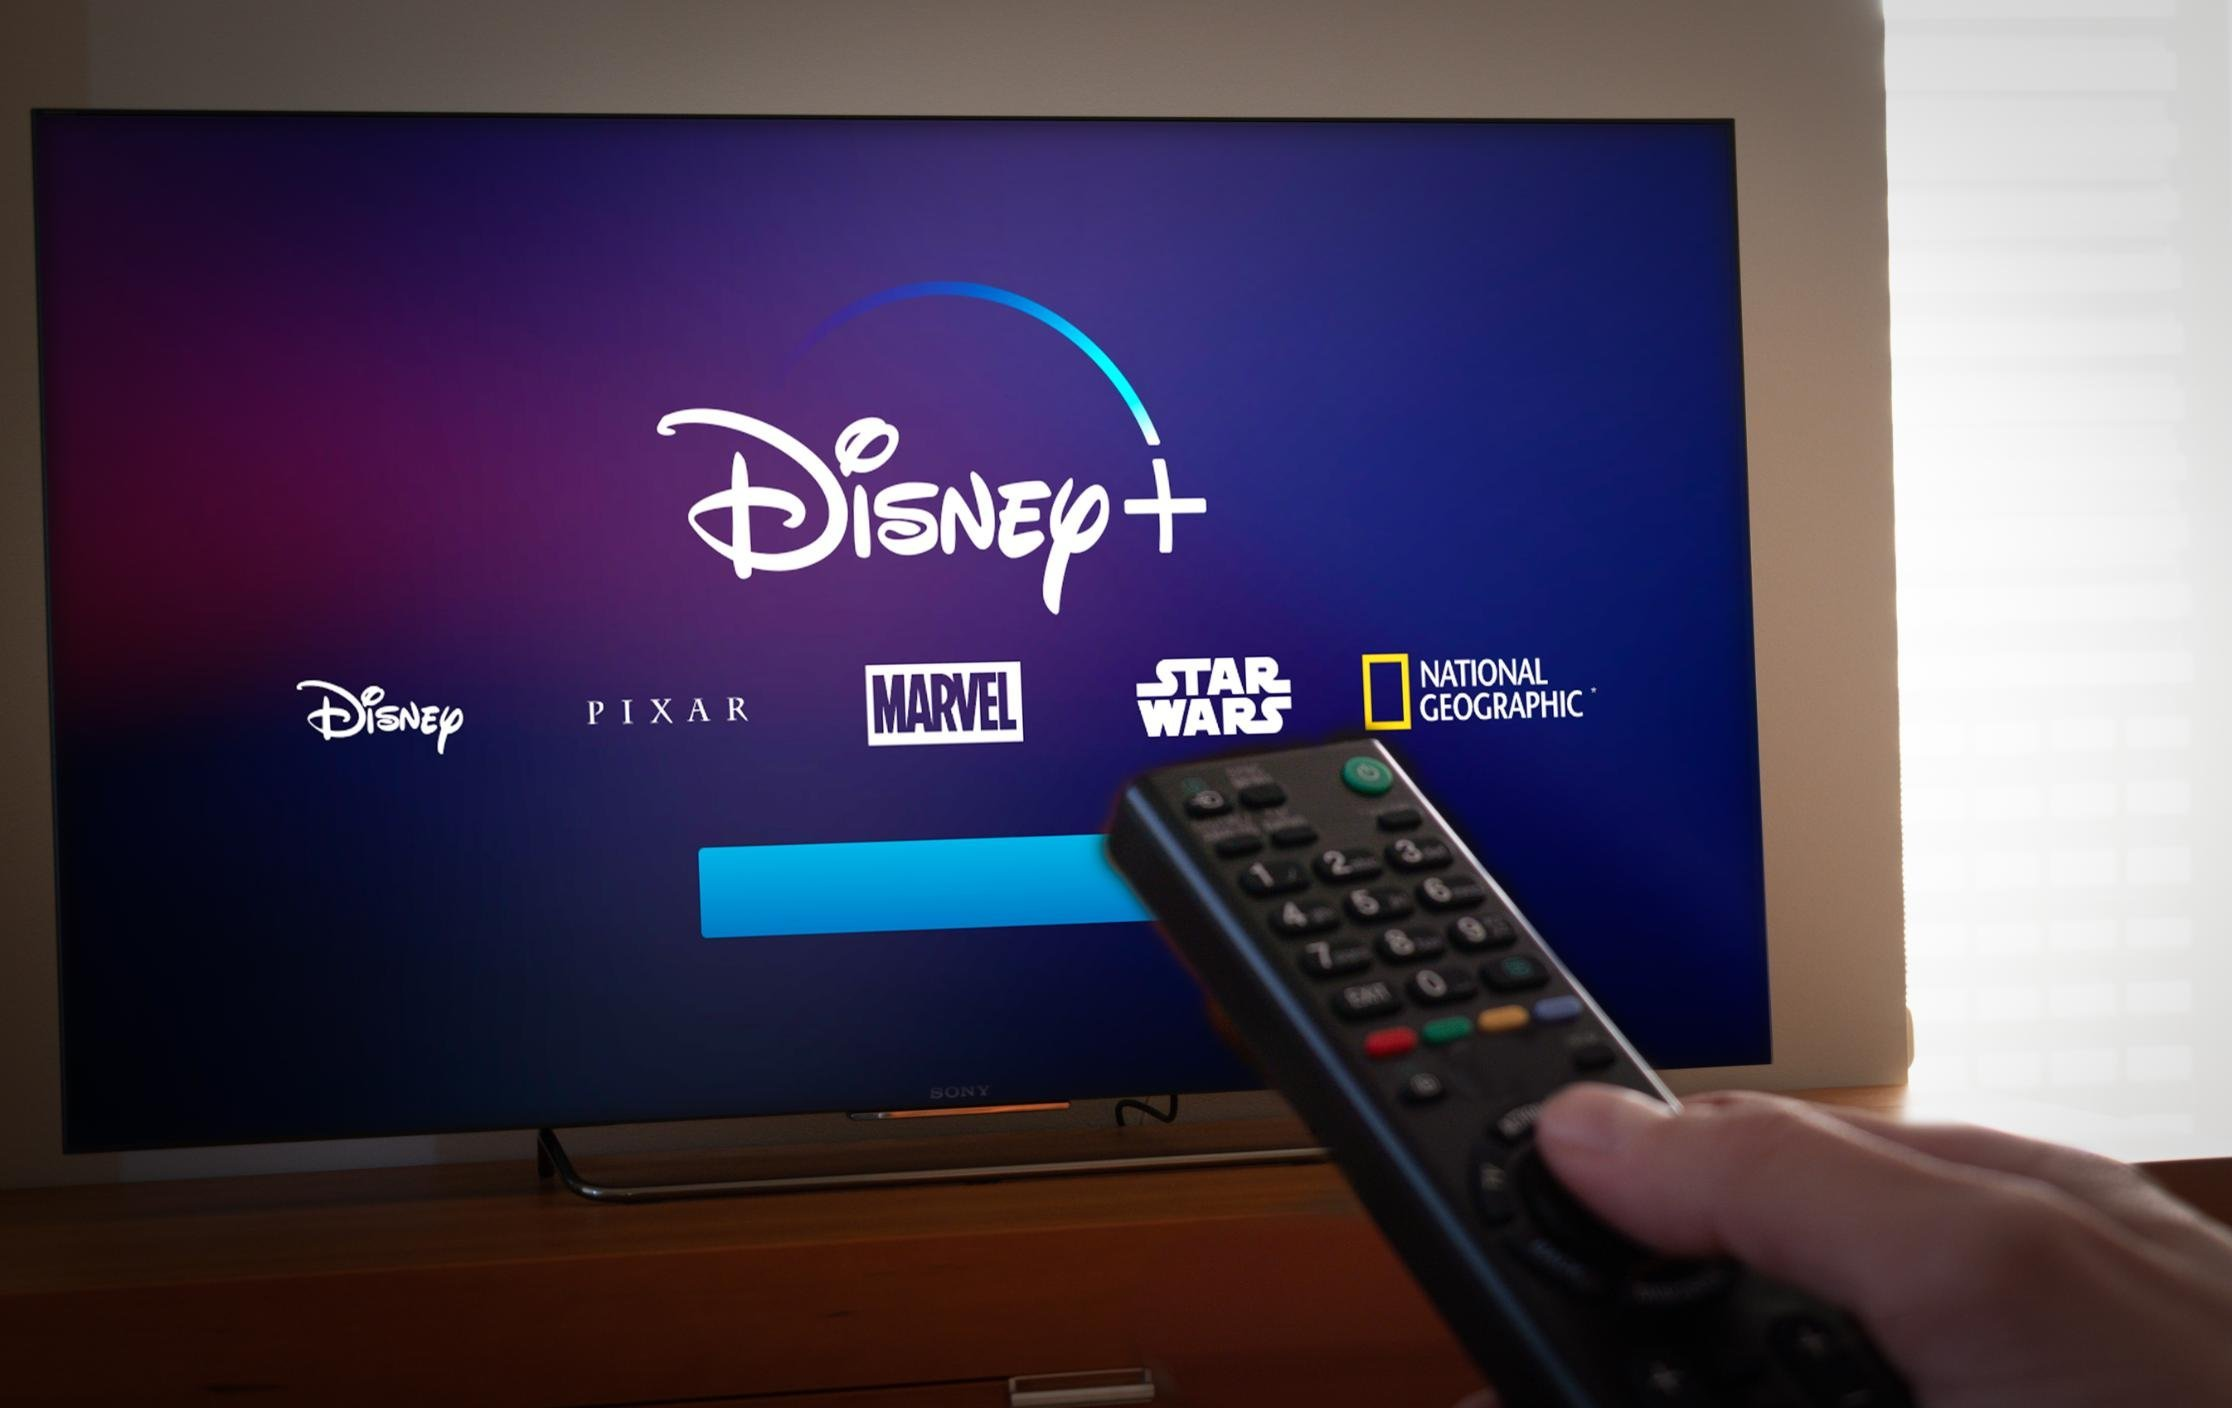 Disney's much-anticipated streaming service debuts in the United States, Canada and the Netherlands. (Credit: Ivan Marc/Shutterstock)